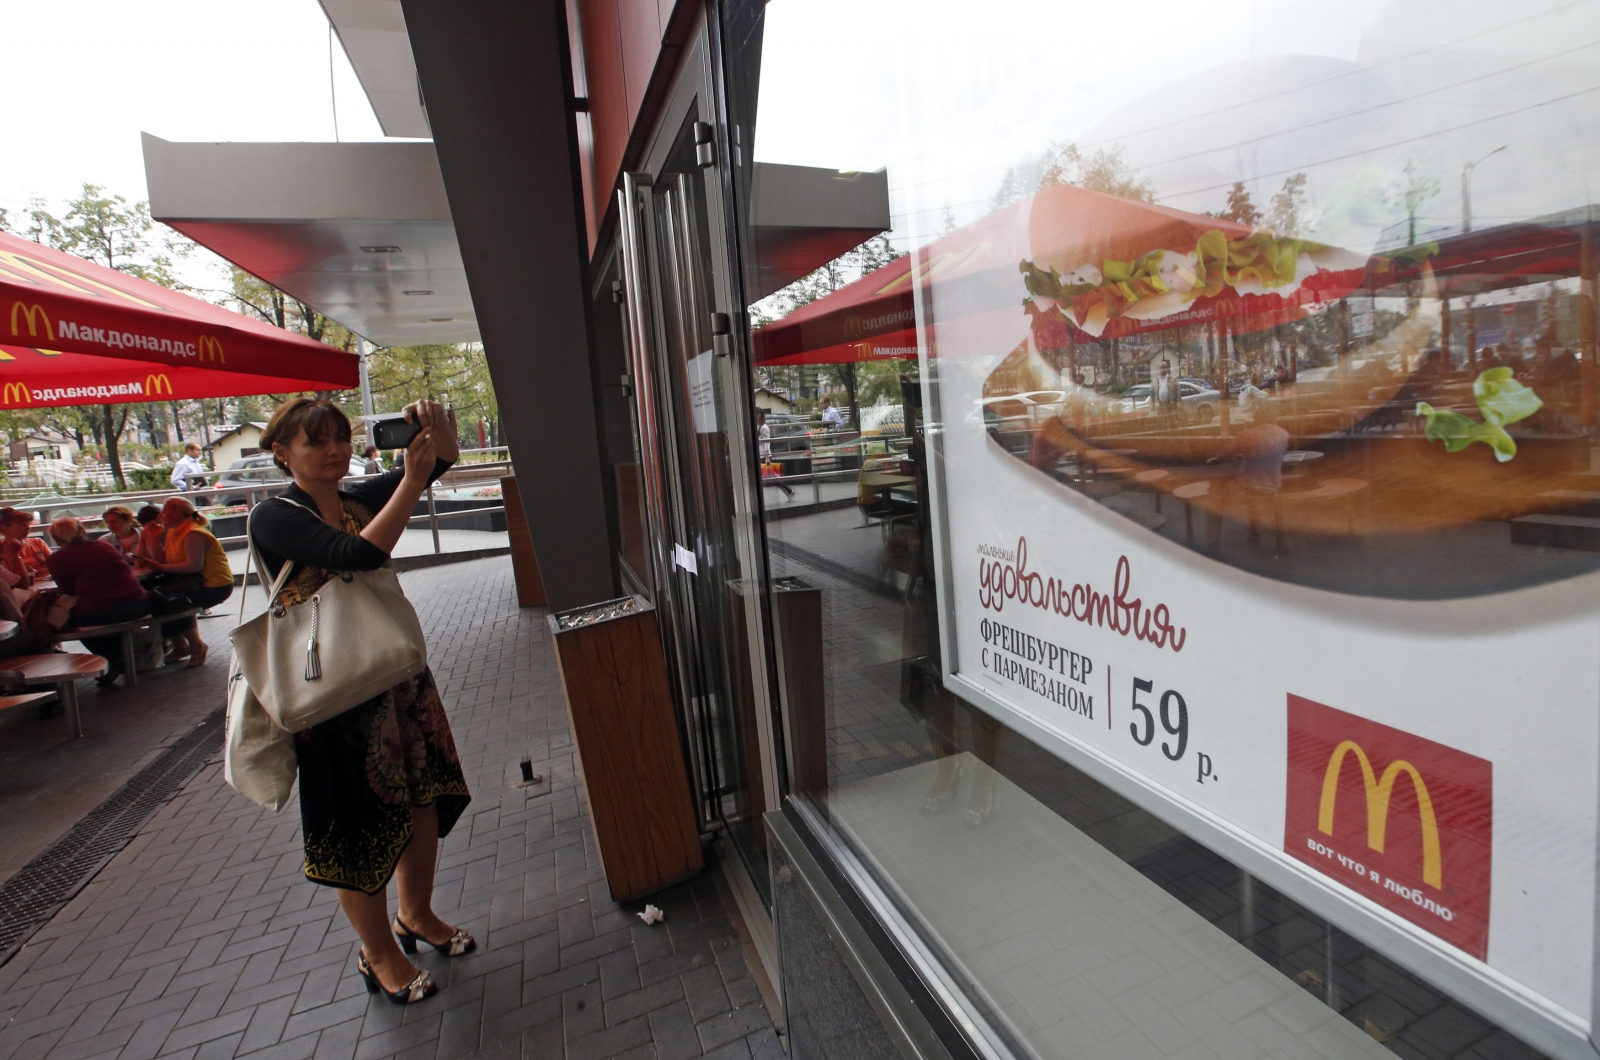 McDonald's Moscow Russia